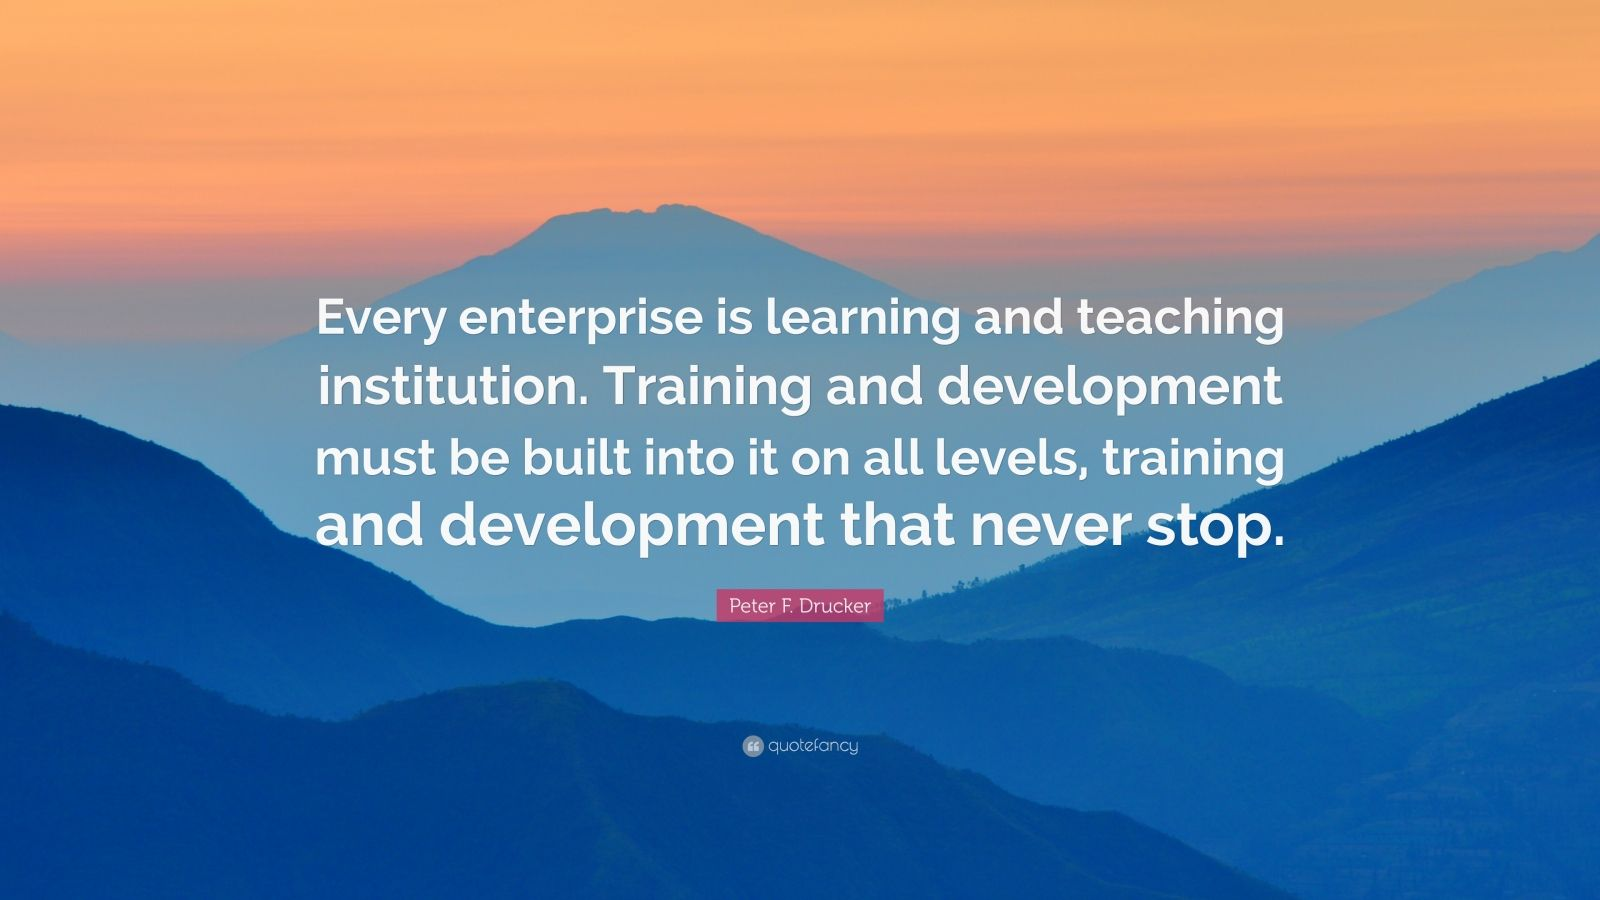 """Peter F. Drucker Quote: """"Every enterprise is learning and teaching institution. Training and development must be built into it on all levels, training and development that never stop."""""""